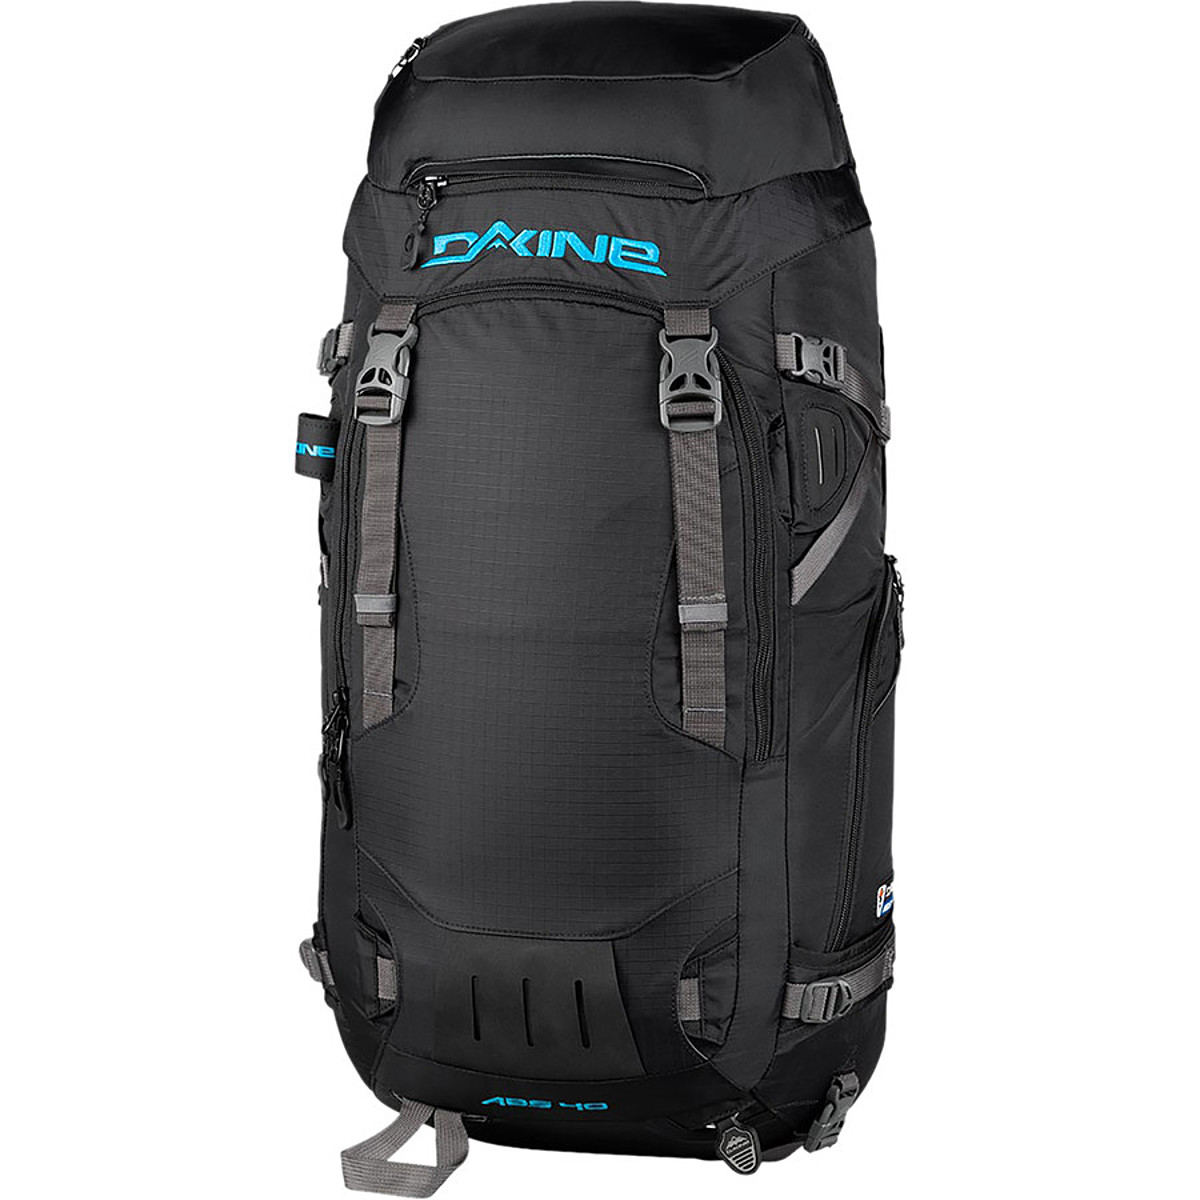 photo: DaKine ABS Vario Cover 40L avalanche airbag pack